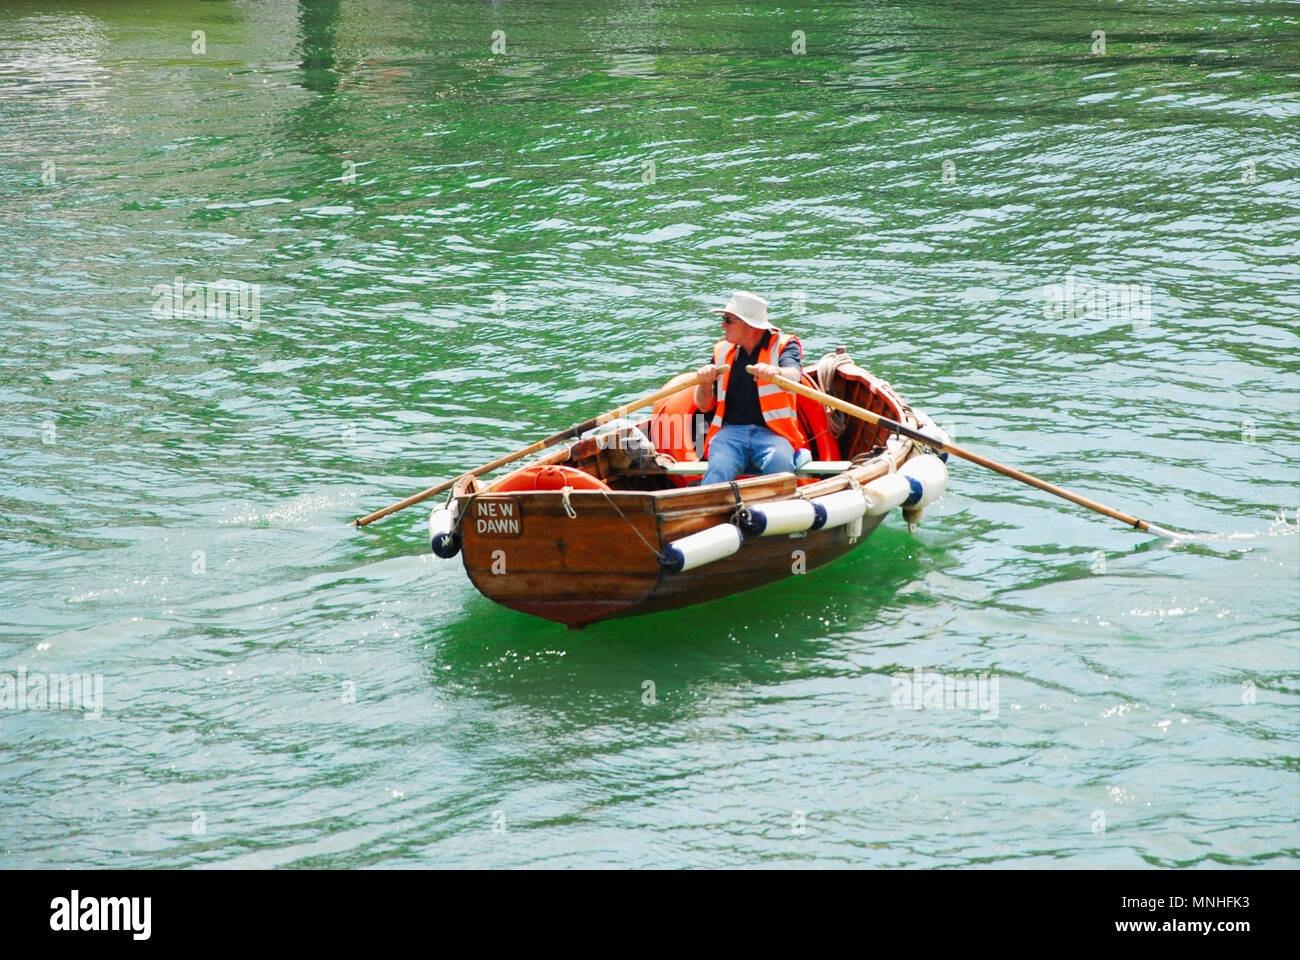 Weymouth.17th May 2018. A ferryman plies his trade across Weymouth's sunny harbour Credit: stuart fretwell/Alamy Live News - Stock Image